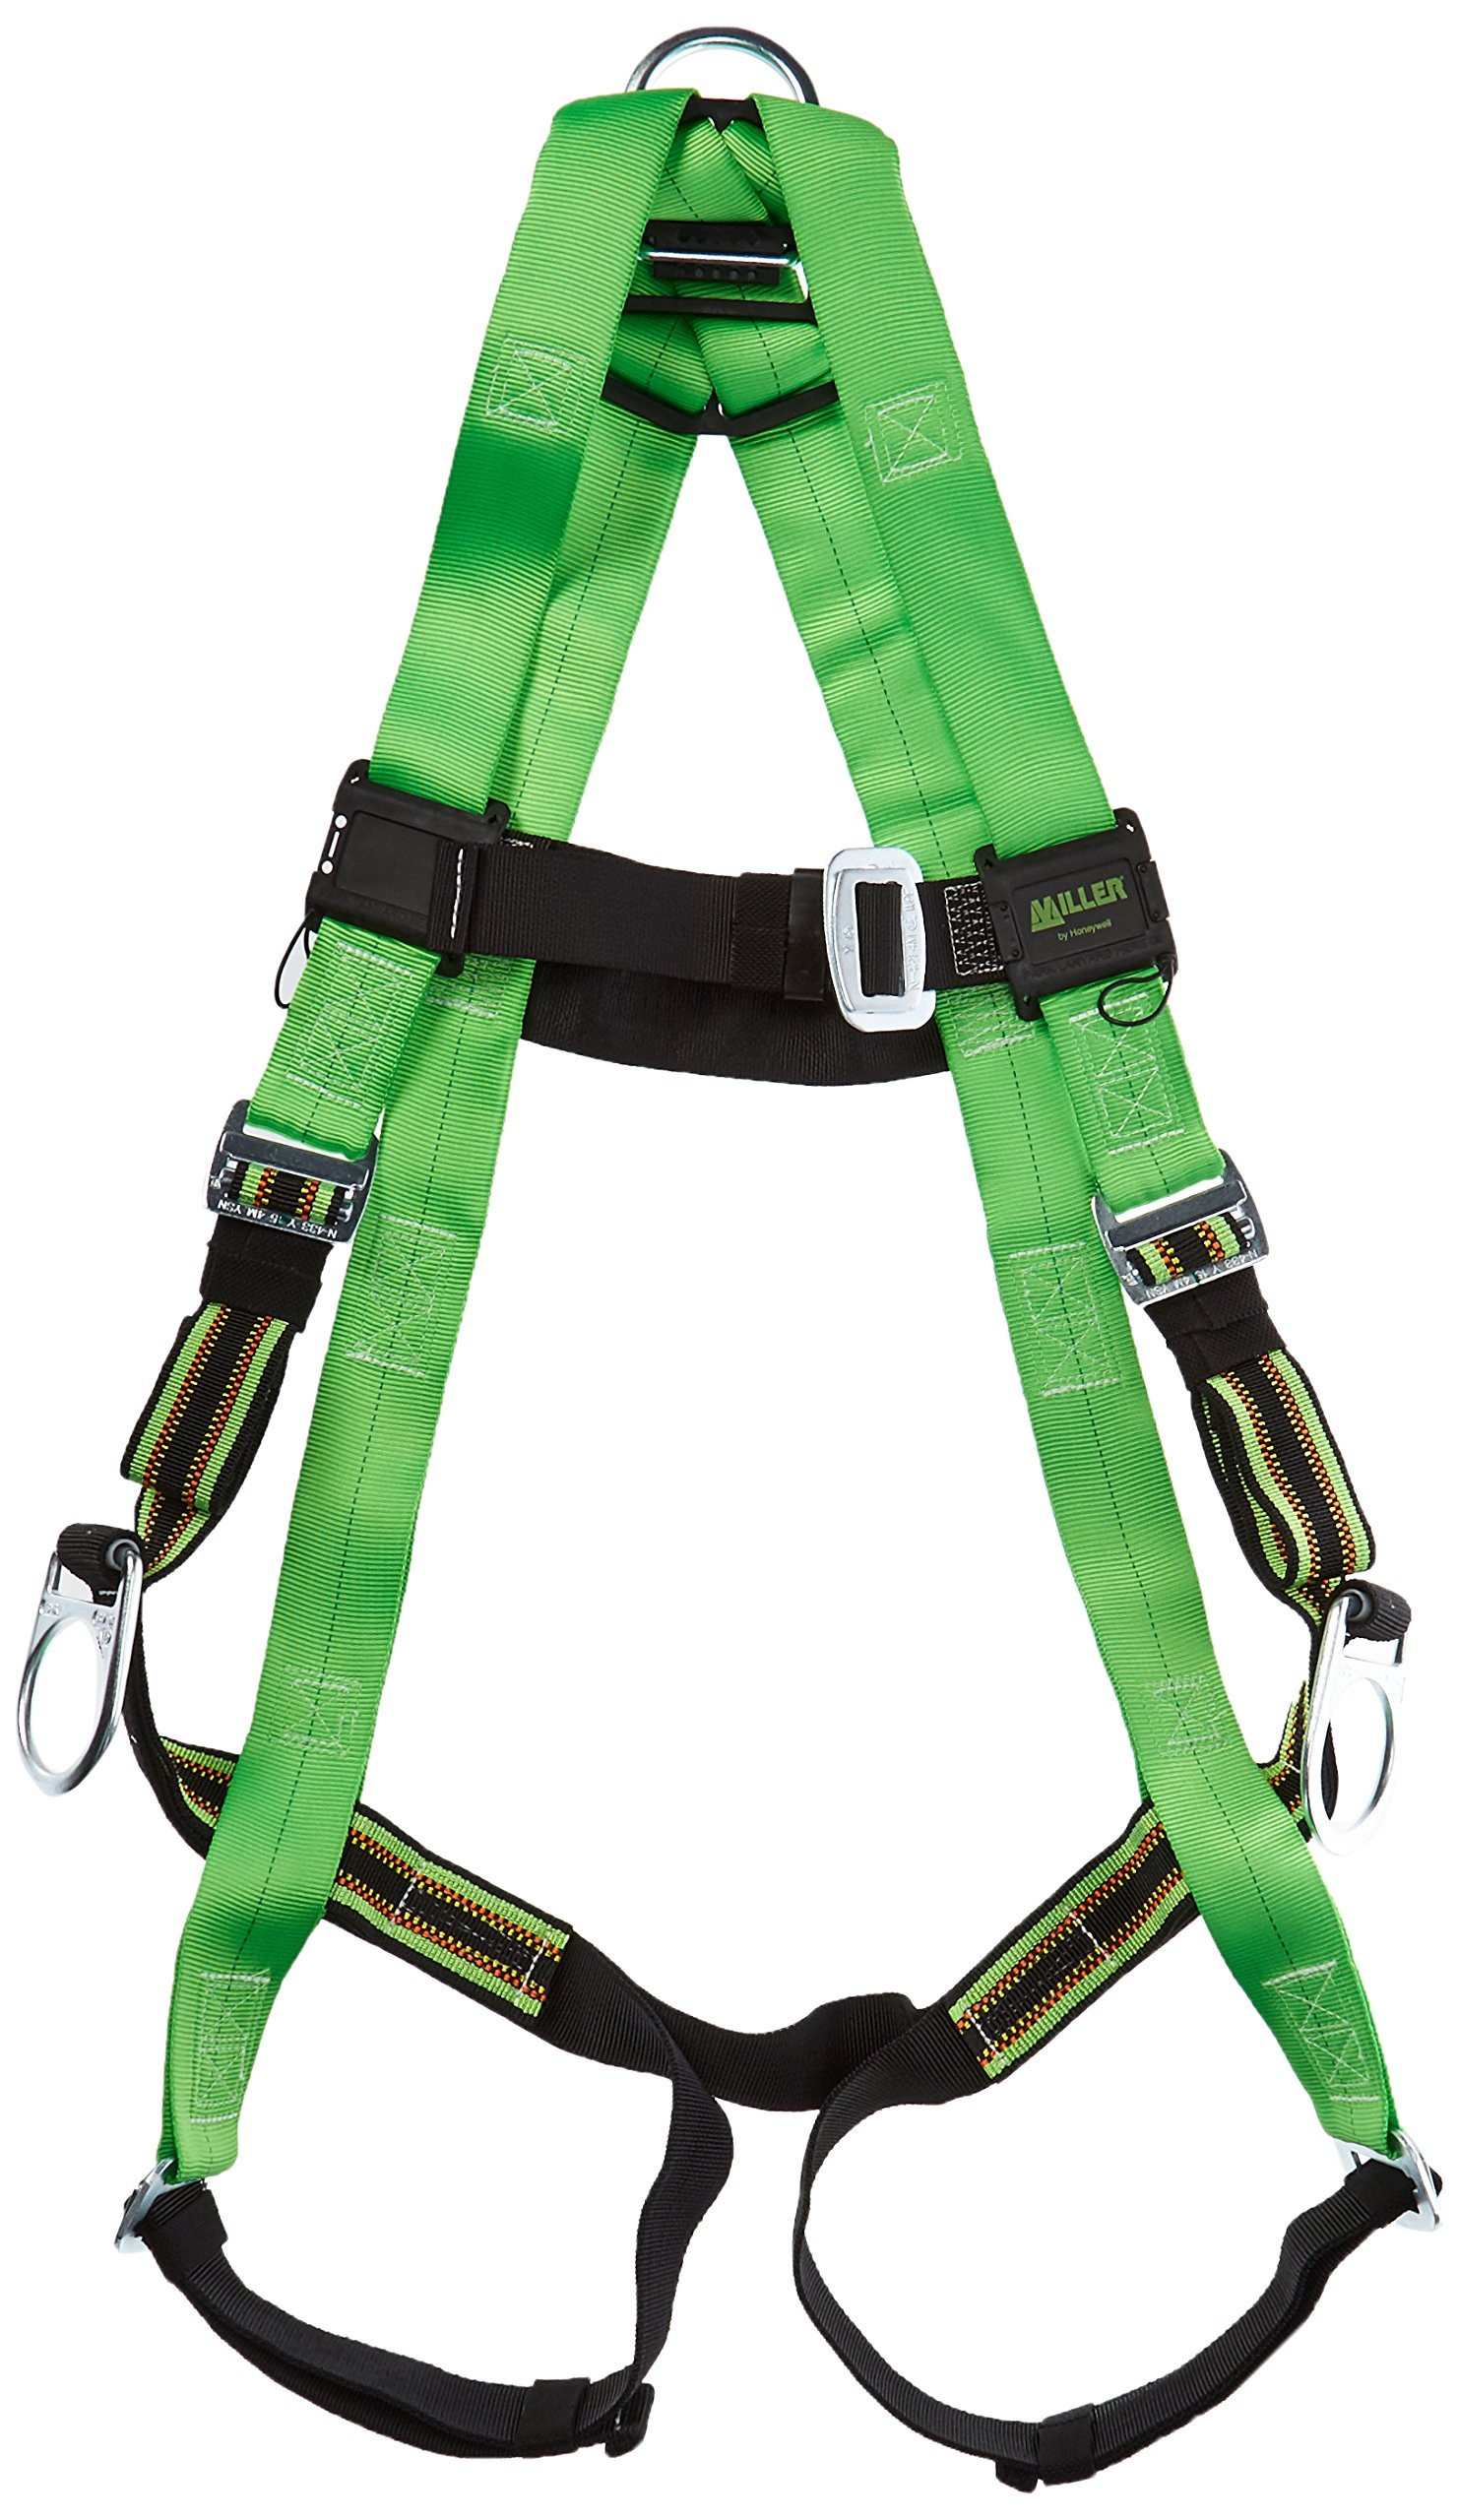 Miller by Honeywell P950-7/UGN Duraflex Python Full-Body Ultra Harness with Mating Buckle Leg Straps, Universal, Green by Honeywell